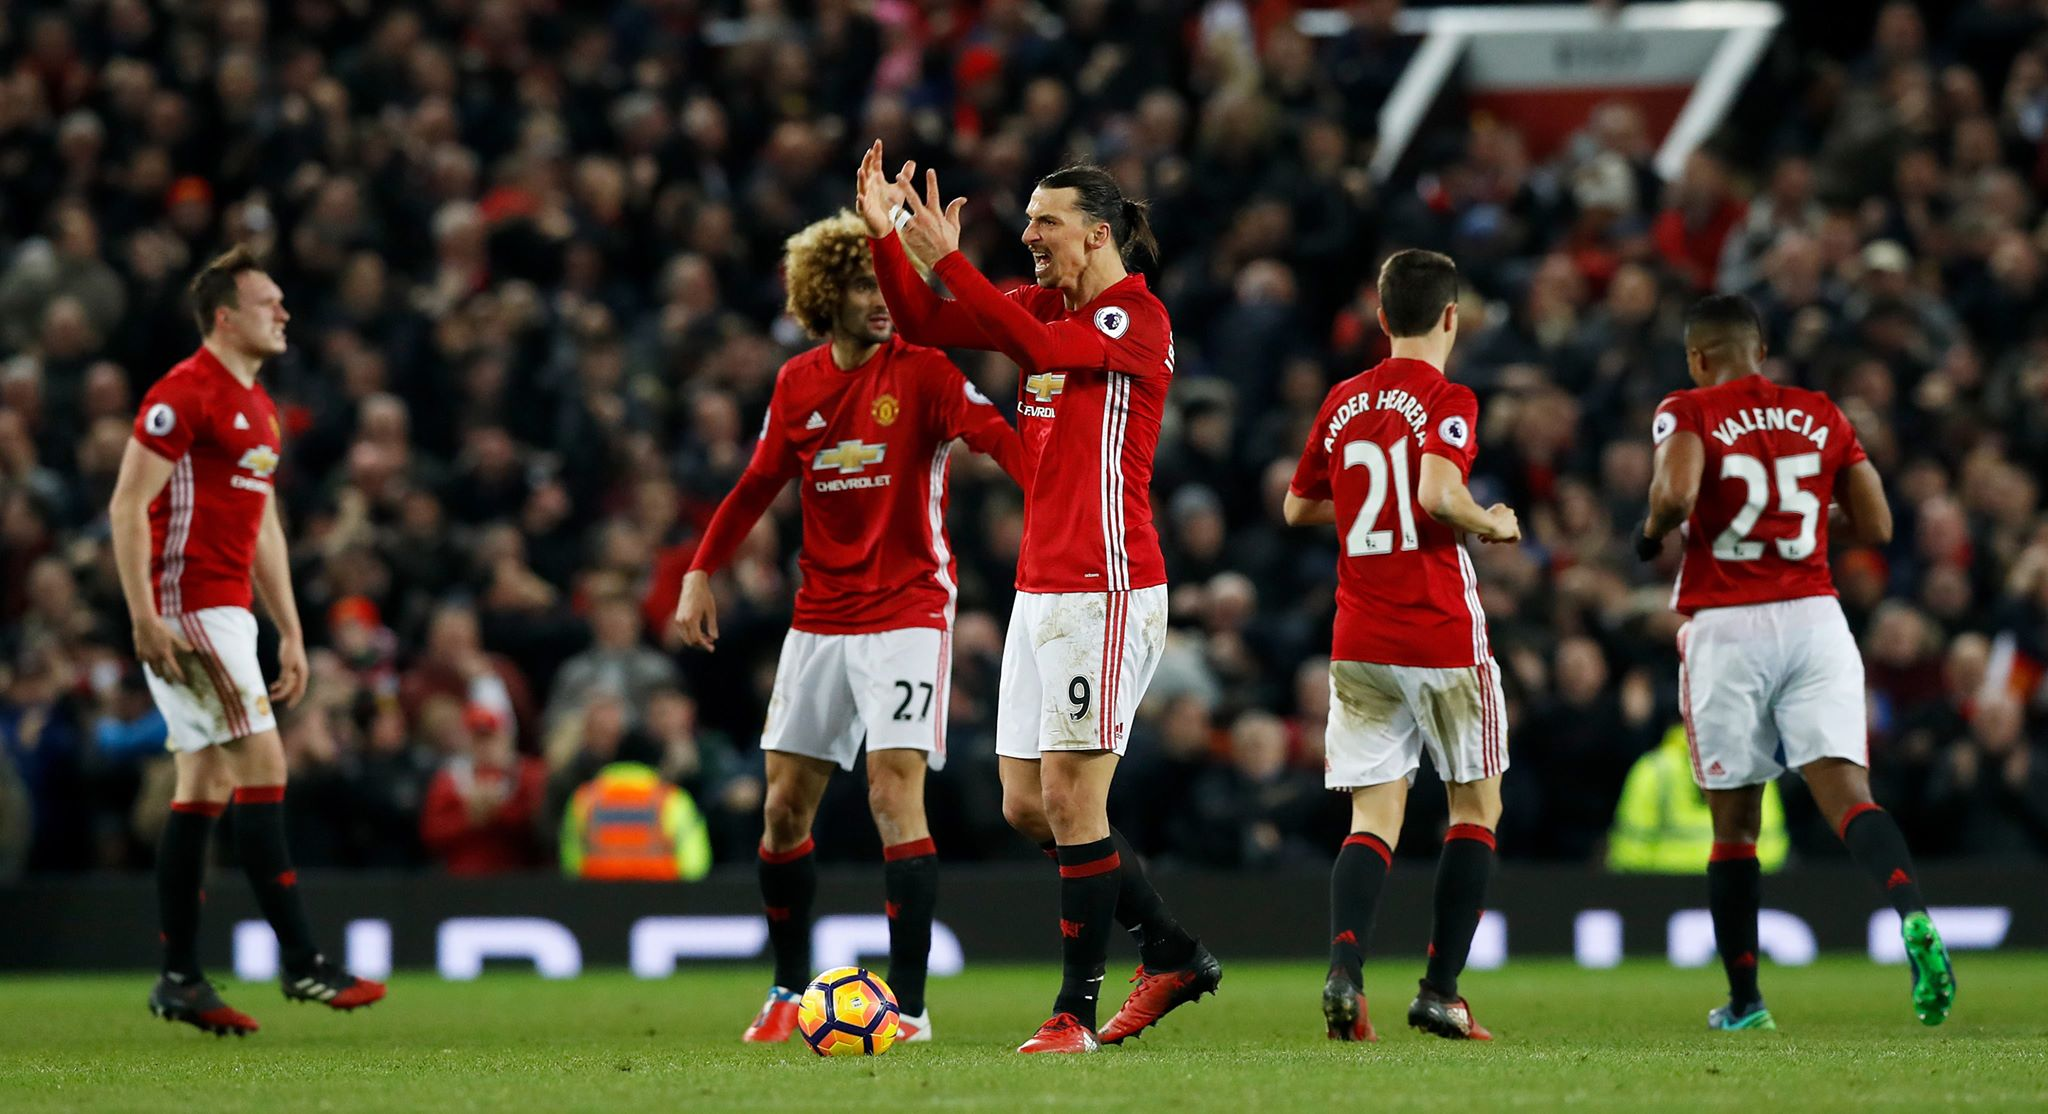 Want to win EPL with United, says Ibrahimovic